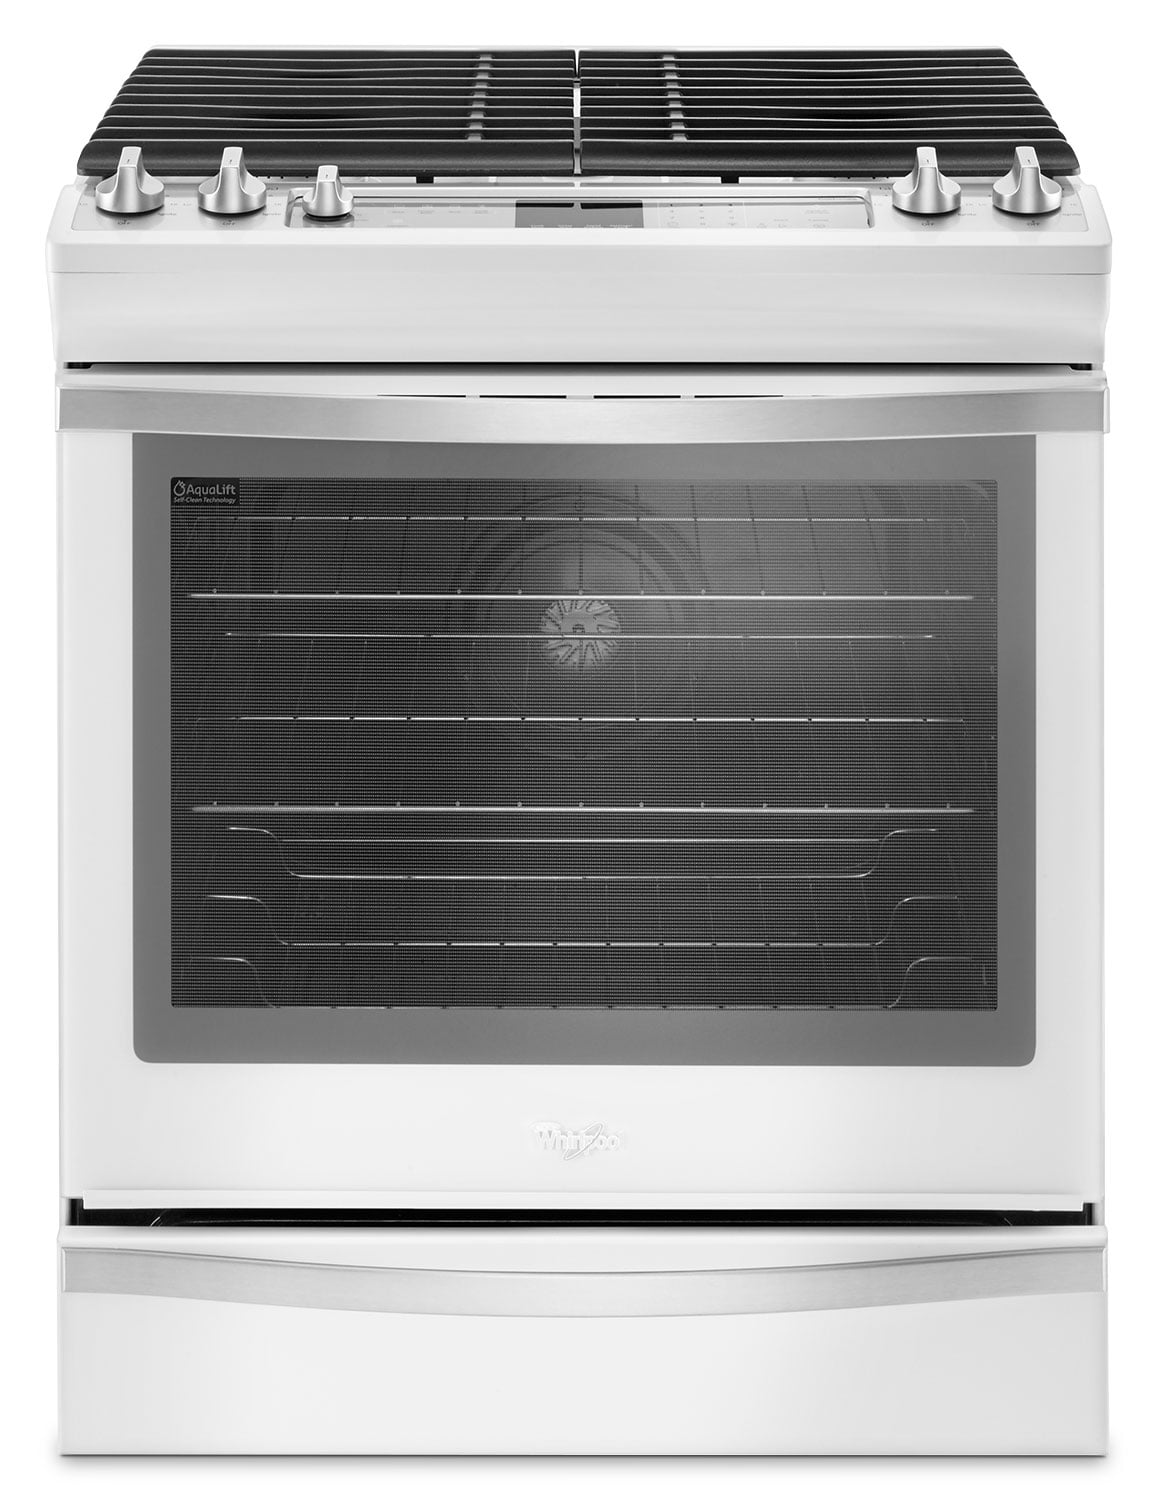 Cooking Products - Whirlpool 5.8 Cu. Ft. Slide-In Gas Range – WEG745H0FH